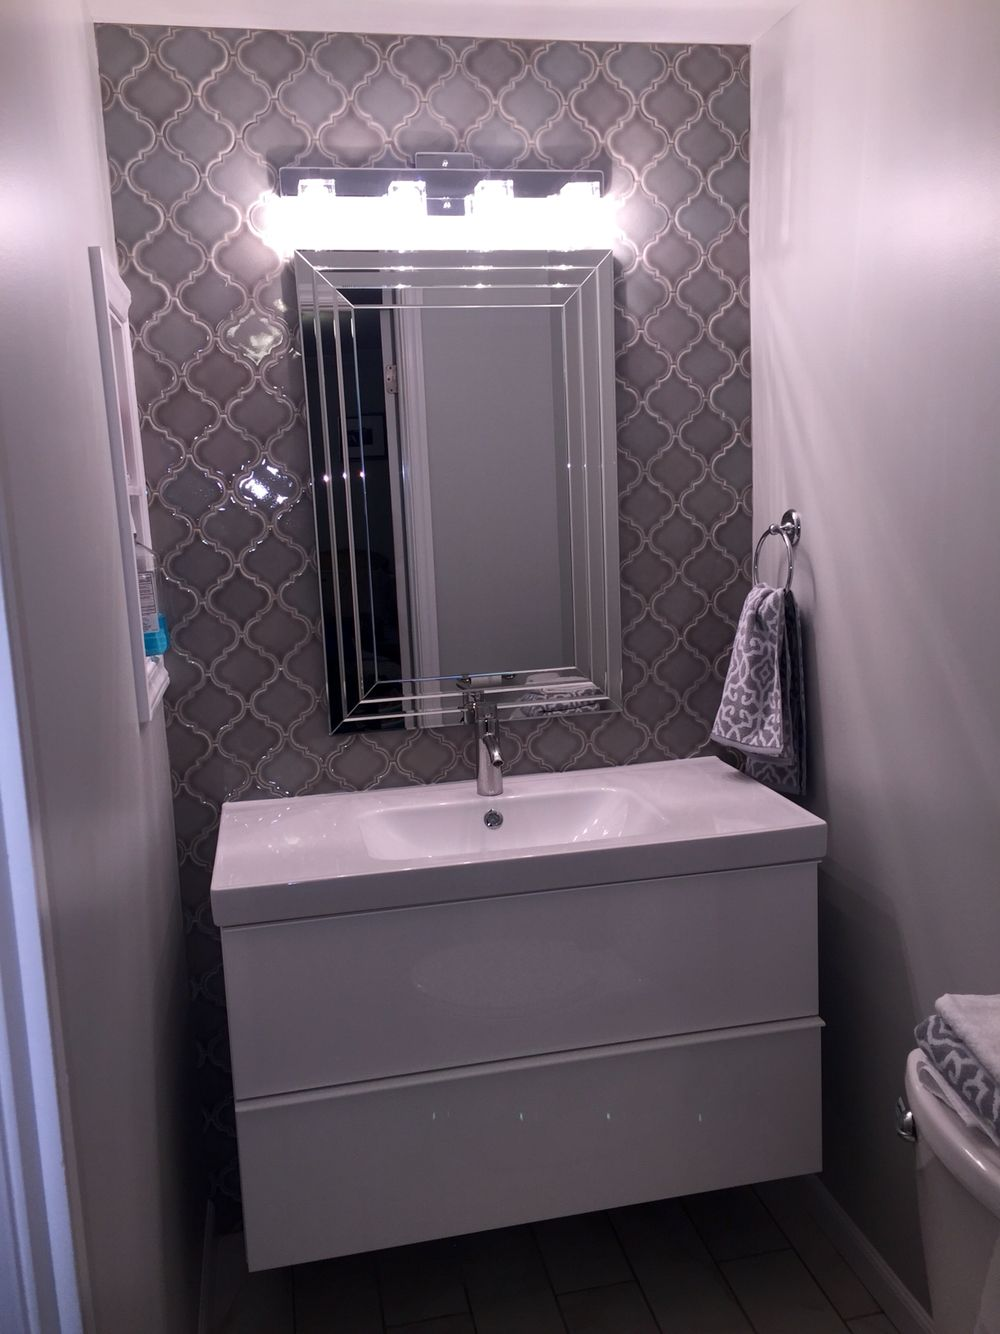 Floating Bathroom Vanity With Dove Grey Arabesque Tile